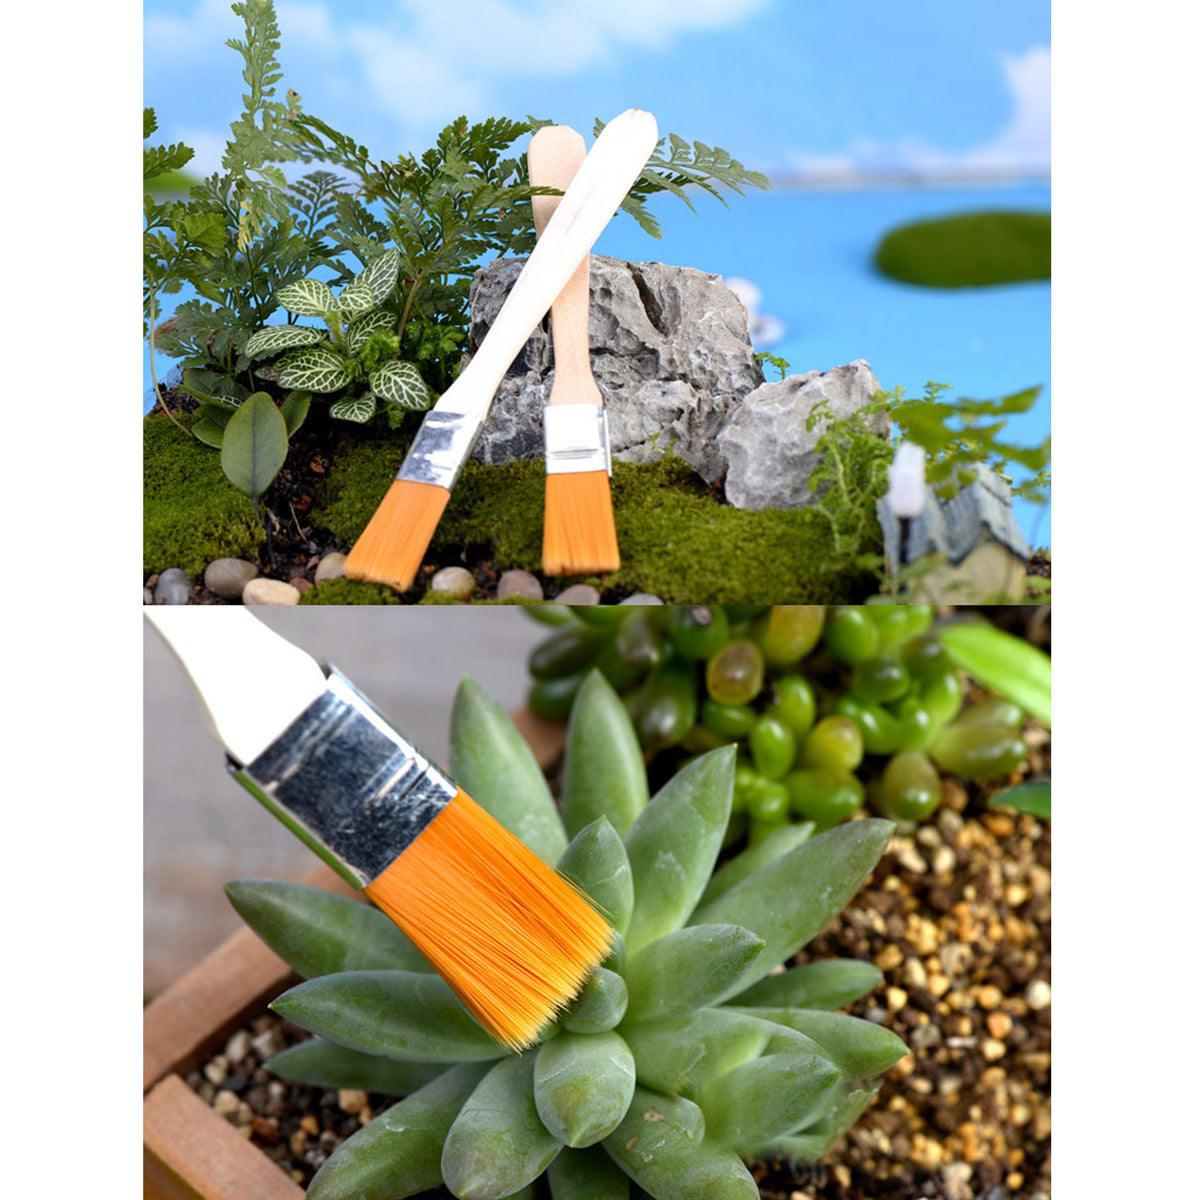 Succulent Planting and Care Tool Set